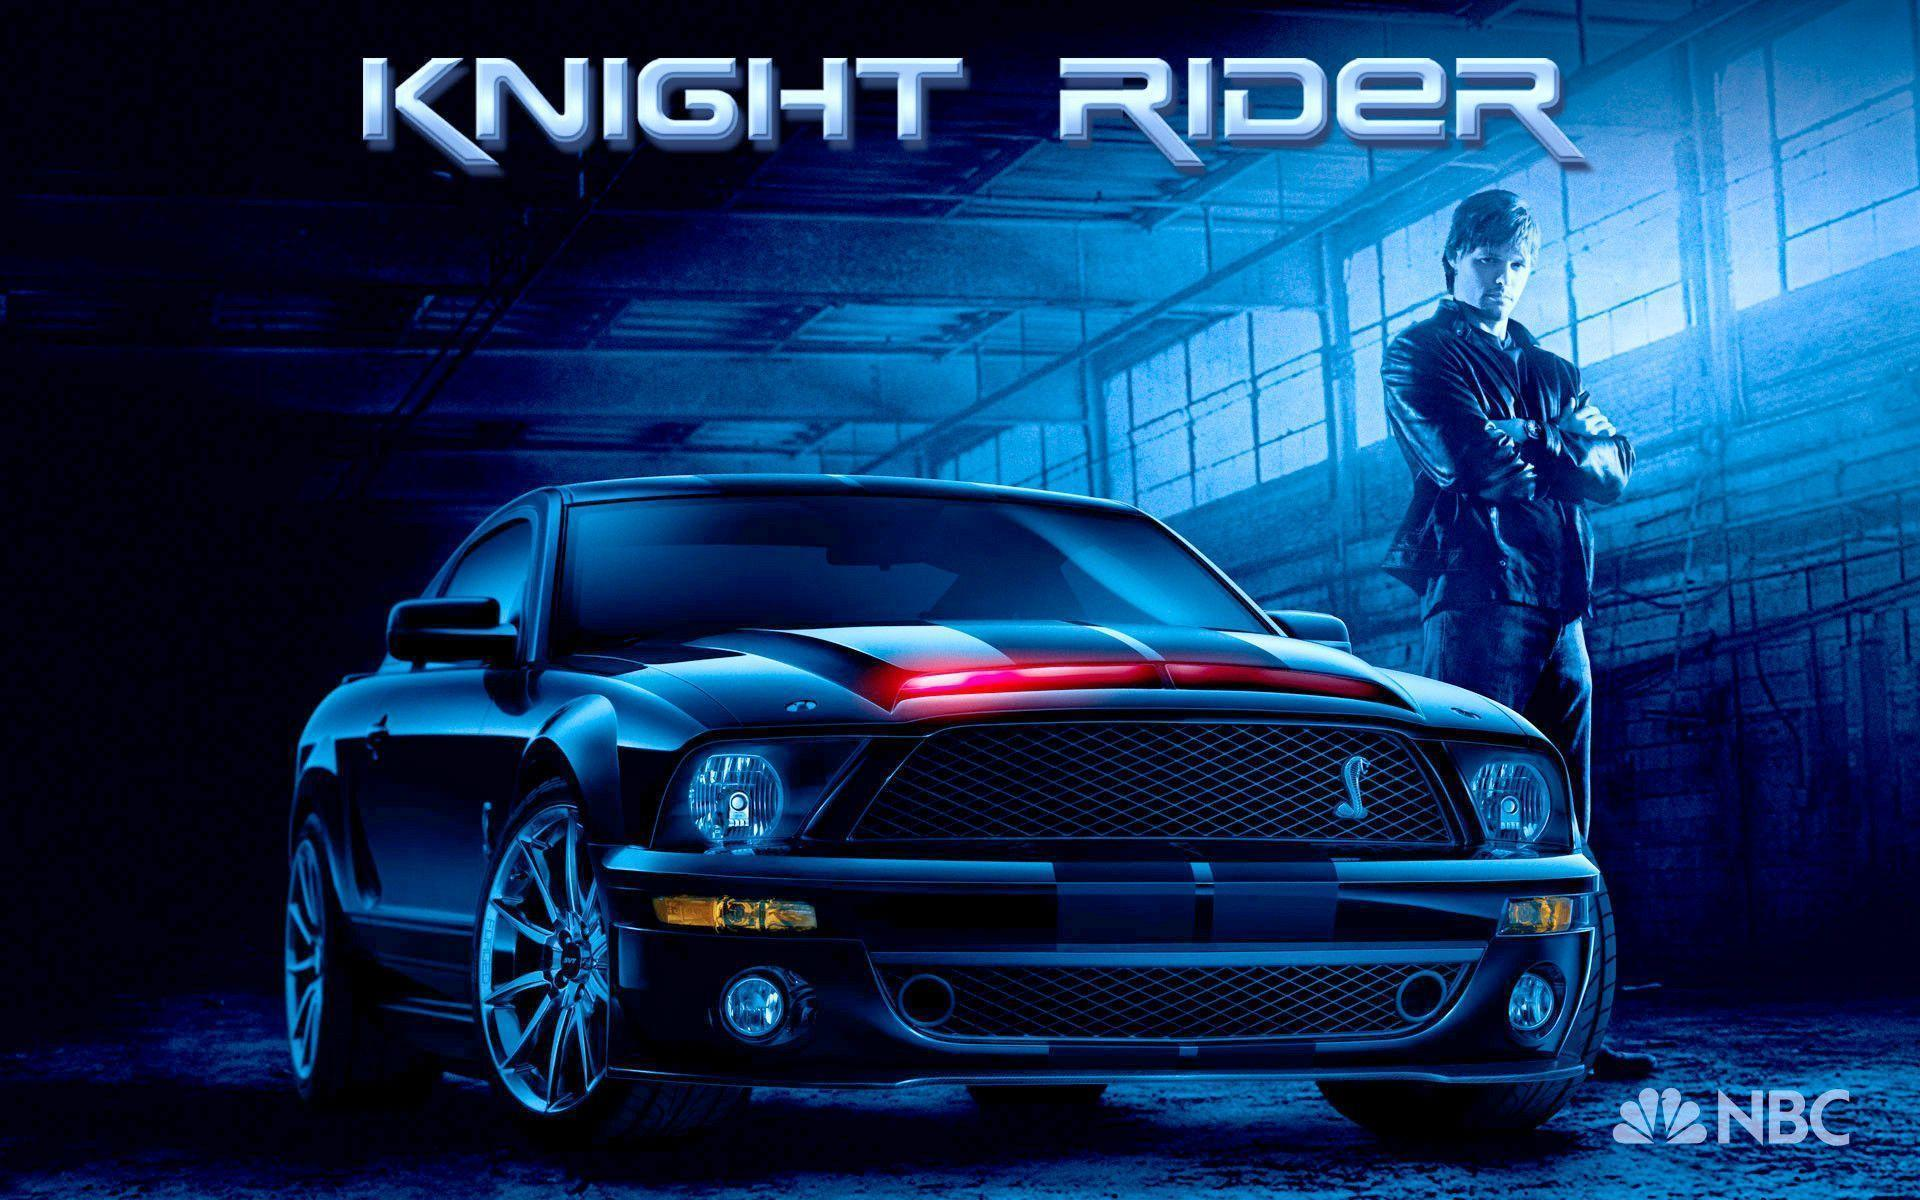 Knight Rider Kitt Wallpapers 1920x1200